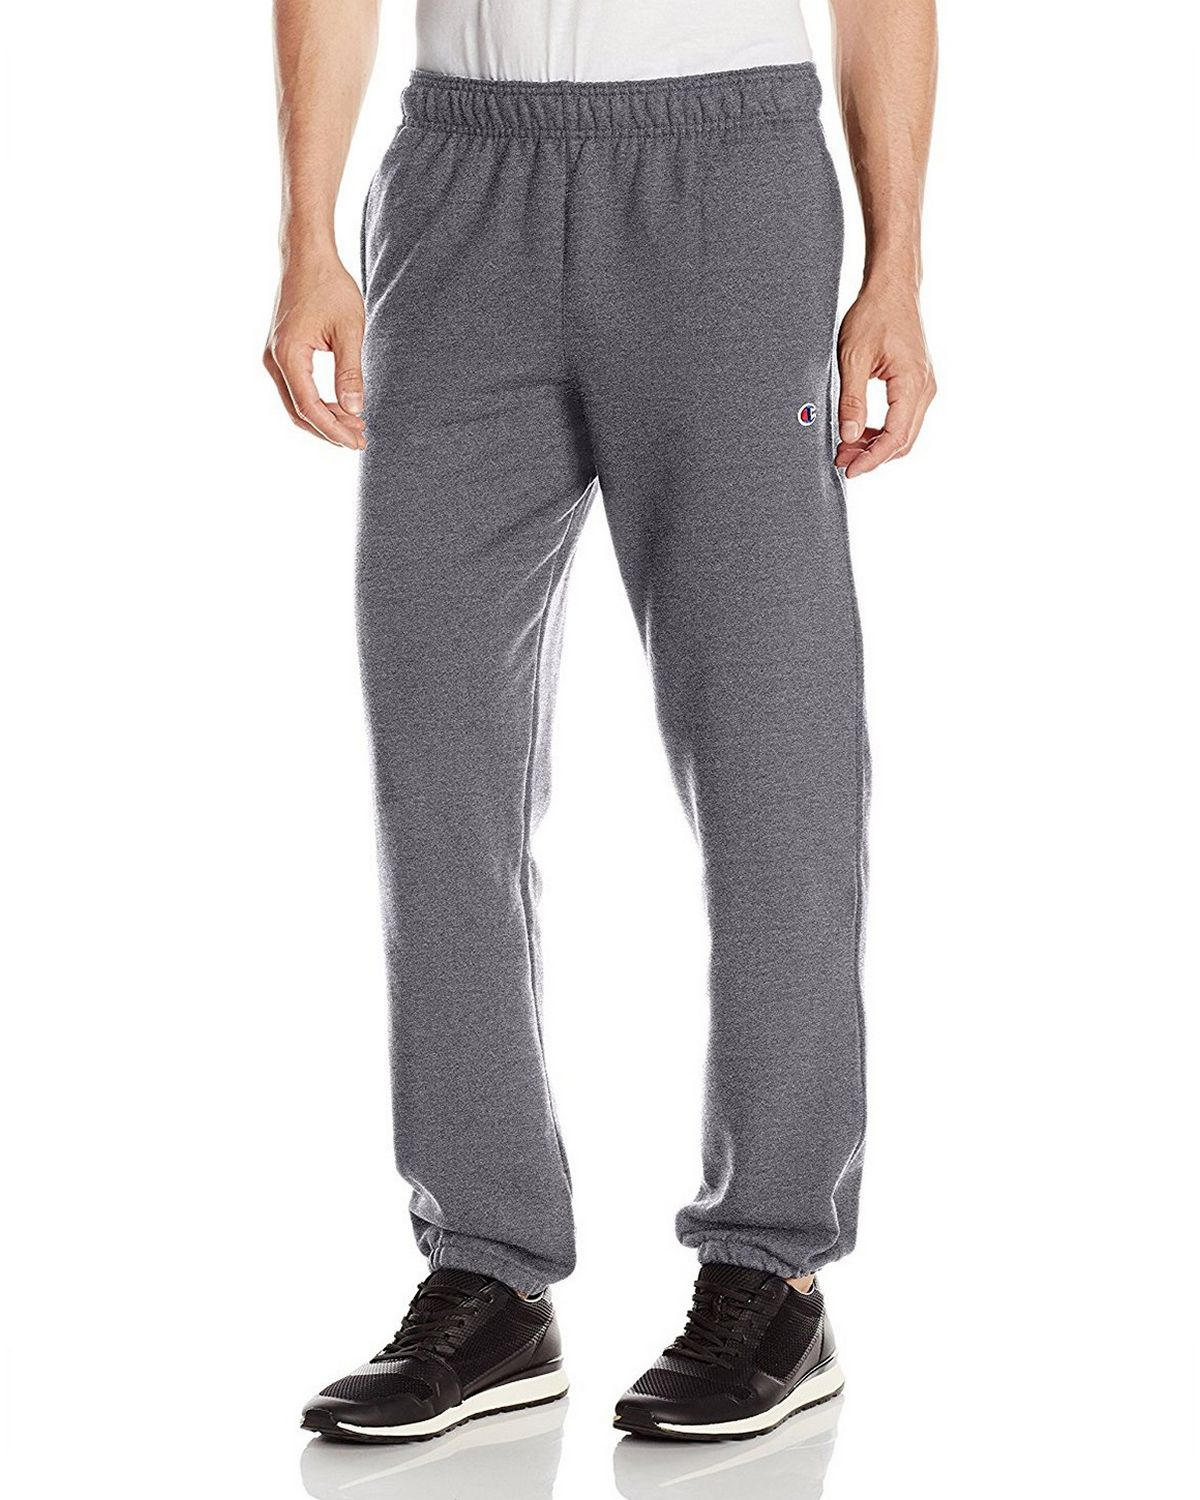 Champion Men's Powerblend Relaxed Bottom Fleece Pant, Granite Heather, L P0894